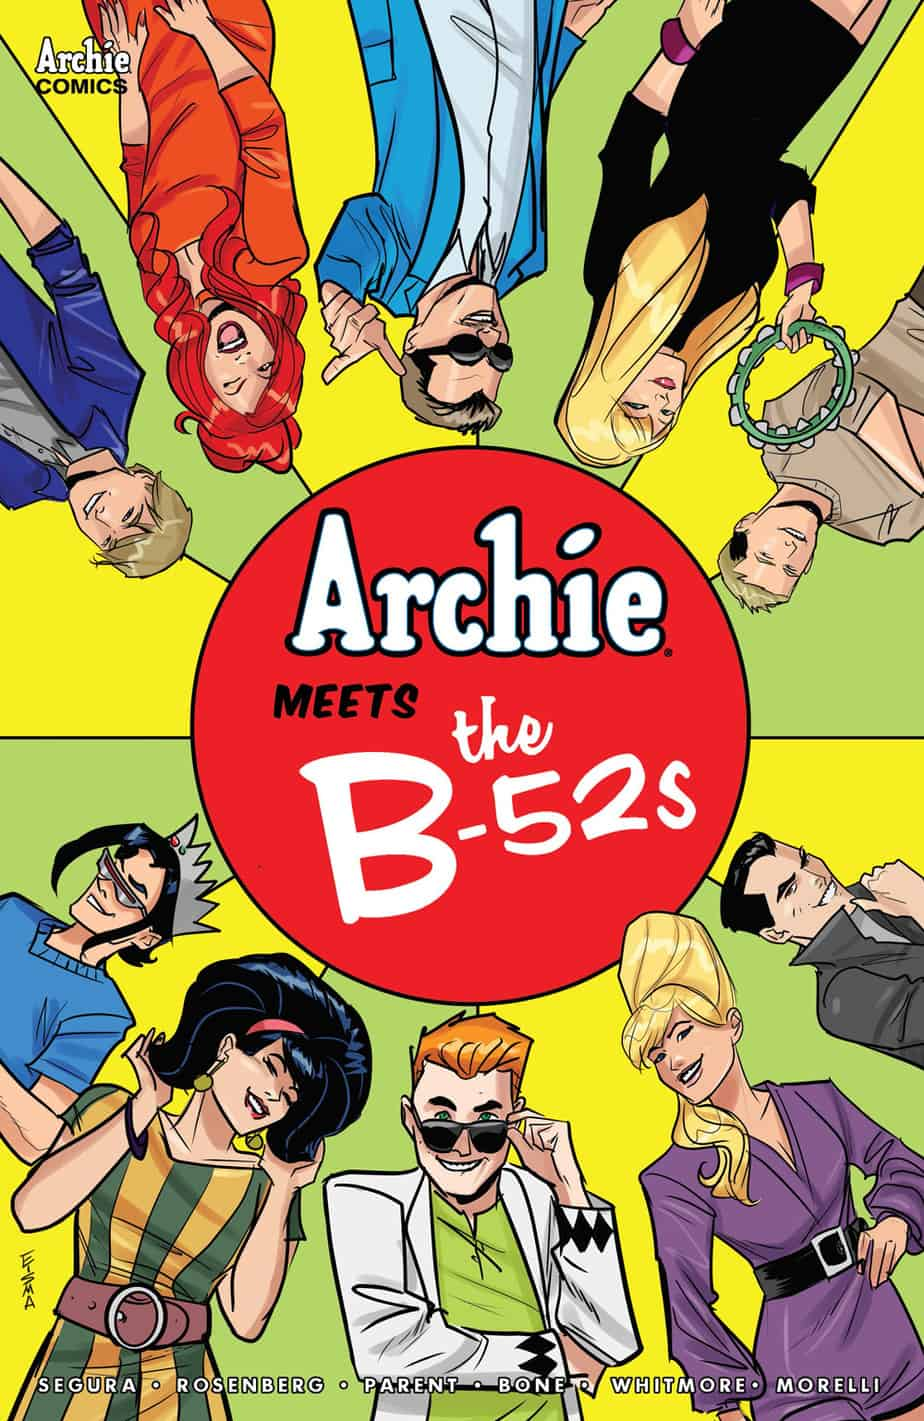 ARCHIE MEETS THE B-52s #1 - Variant Cover by Joe Eisma